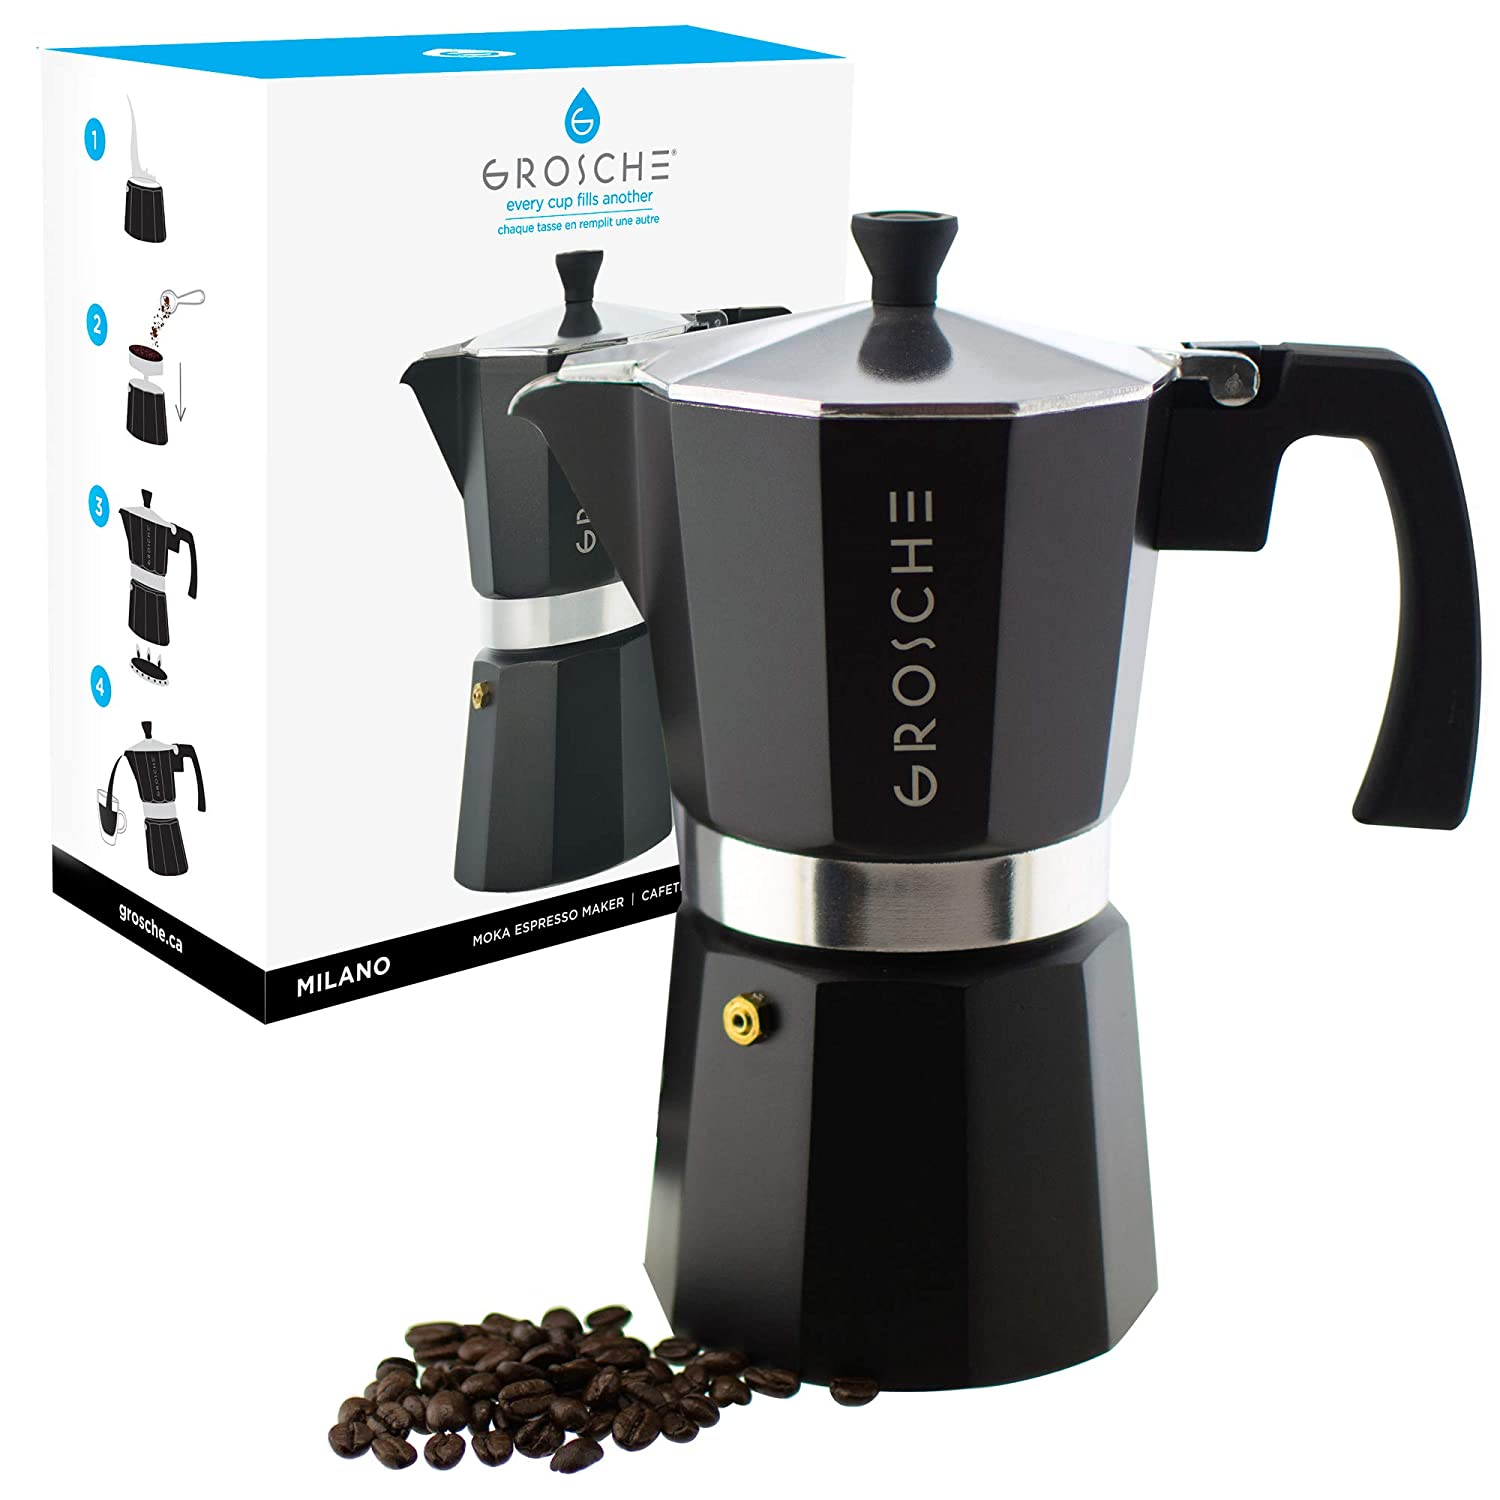 GROSCHE Milano Moka 9-Cup Stovetop Espresso Coffee Maker with Italian Safety Valve and Protection Handle, Black